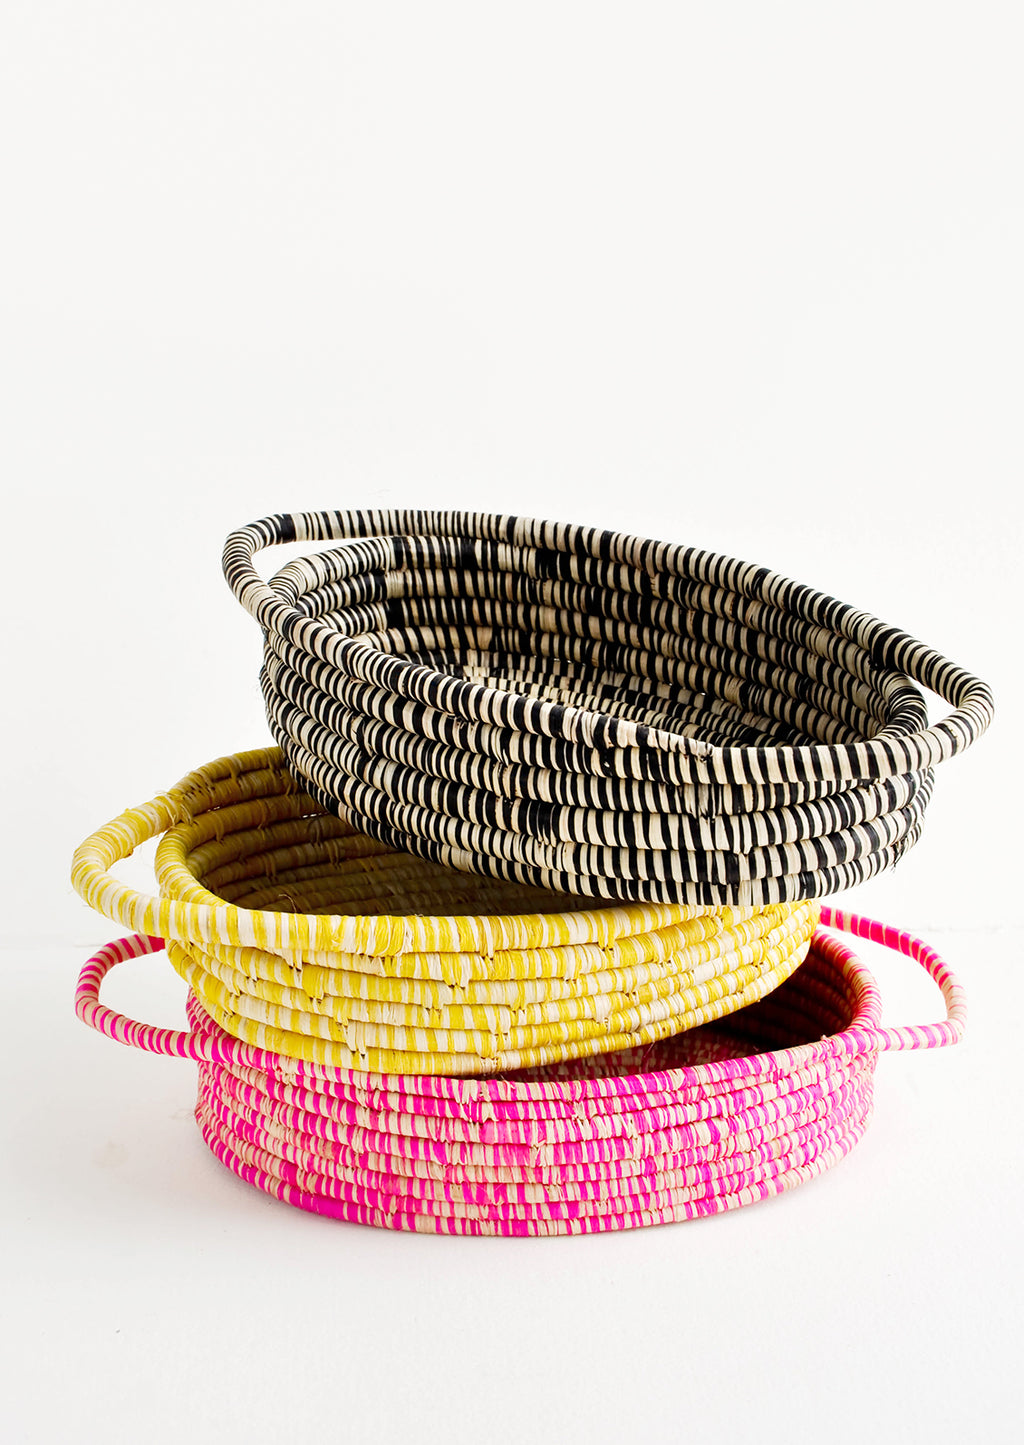 Black: Stack Of Oval Shaped Raffia Baskets in black, yellow, and pink.